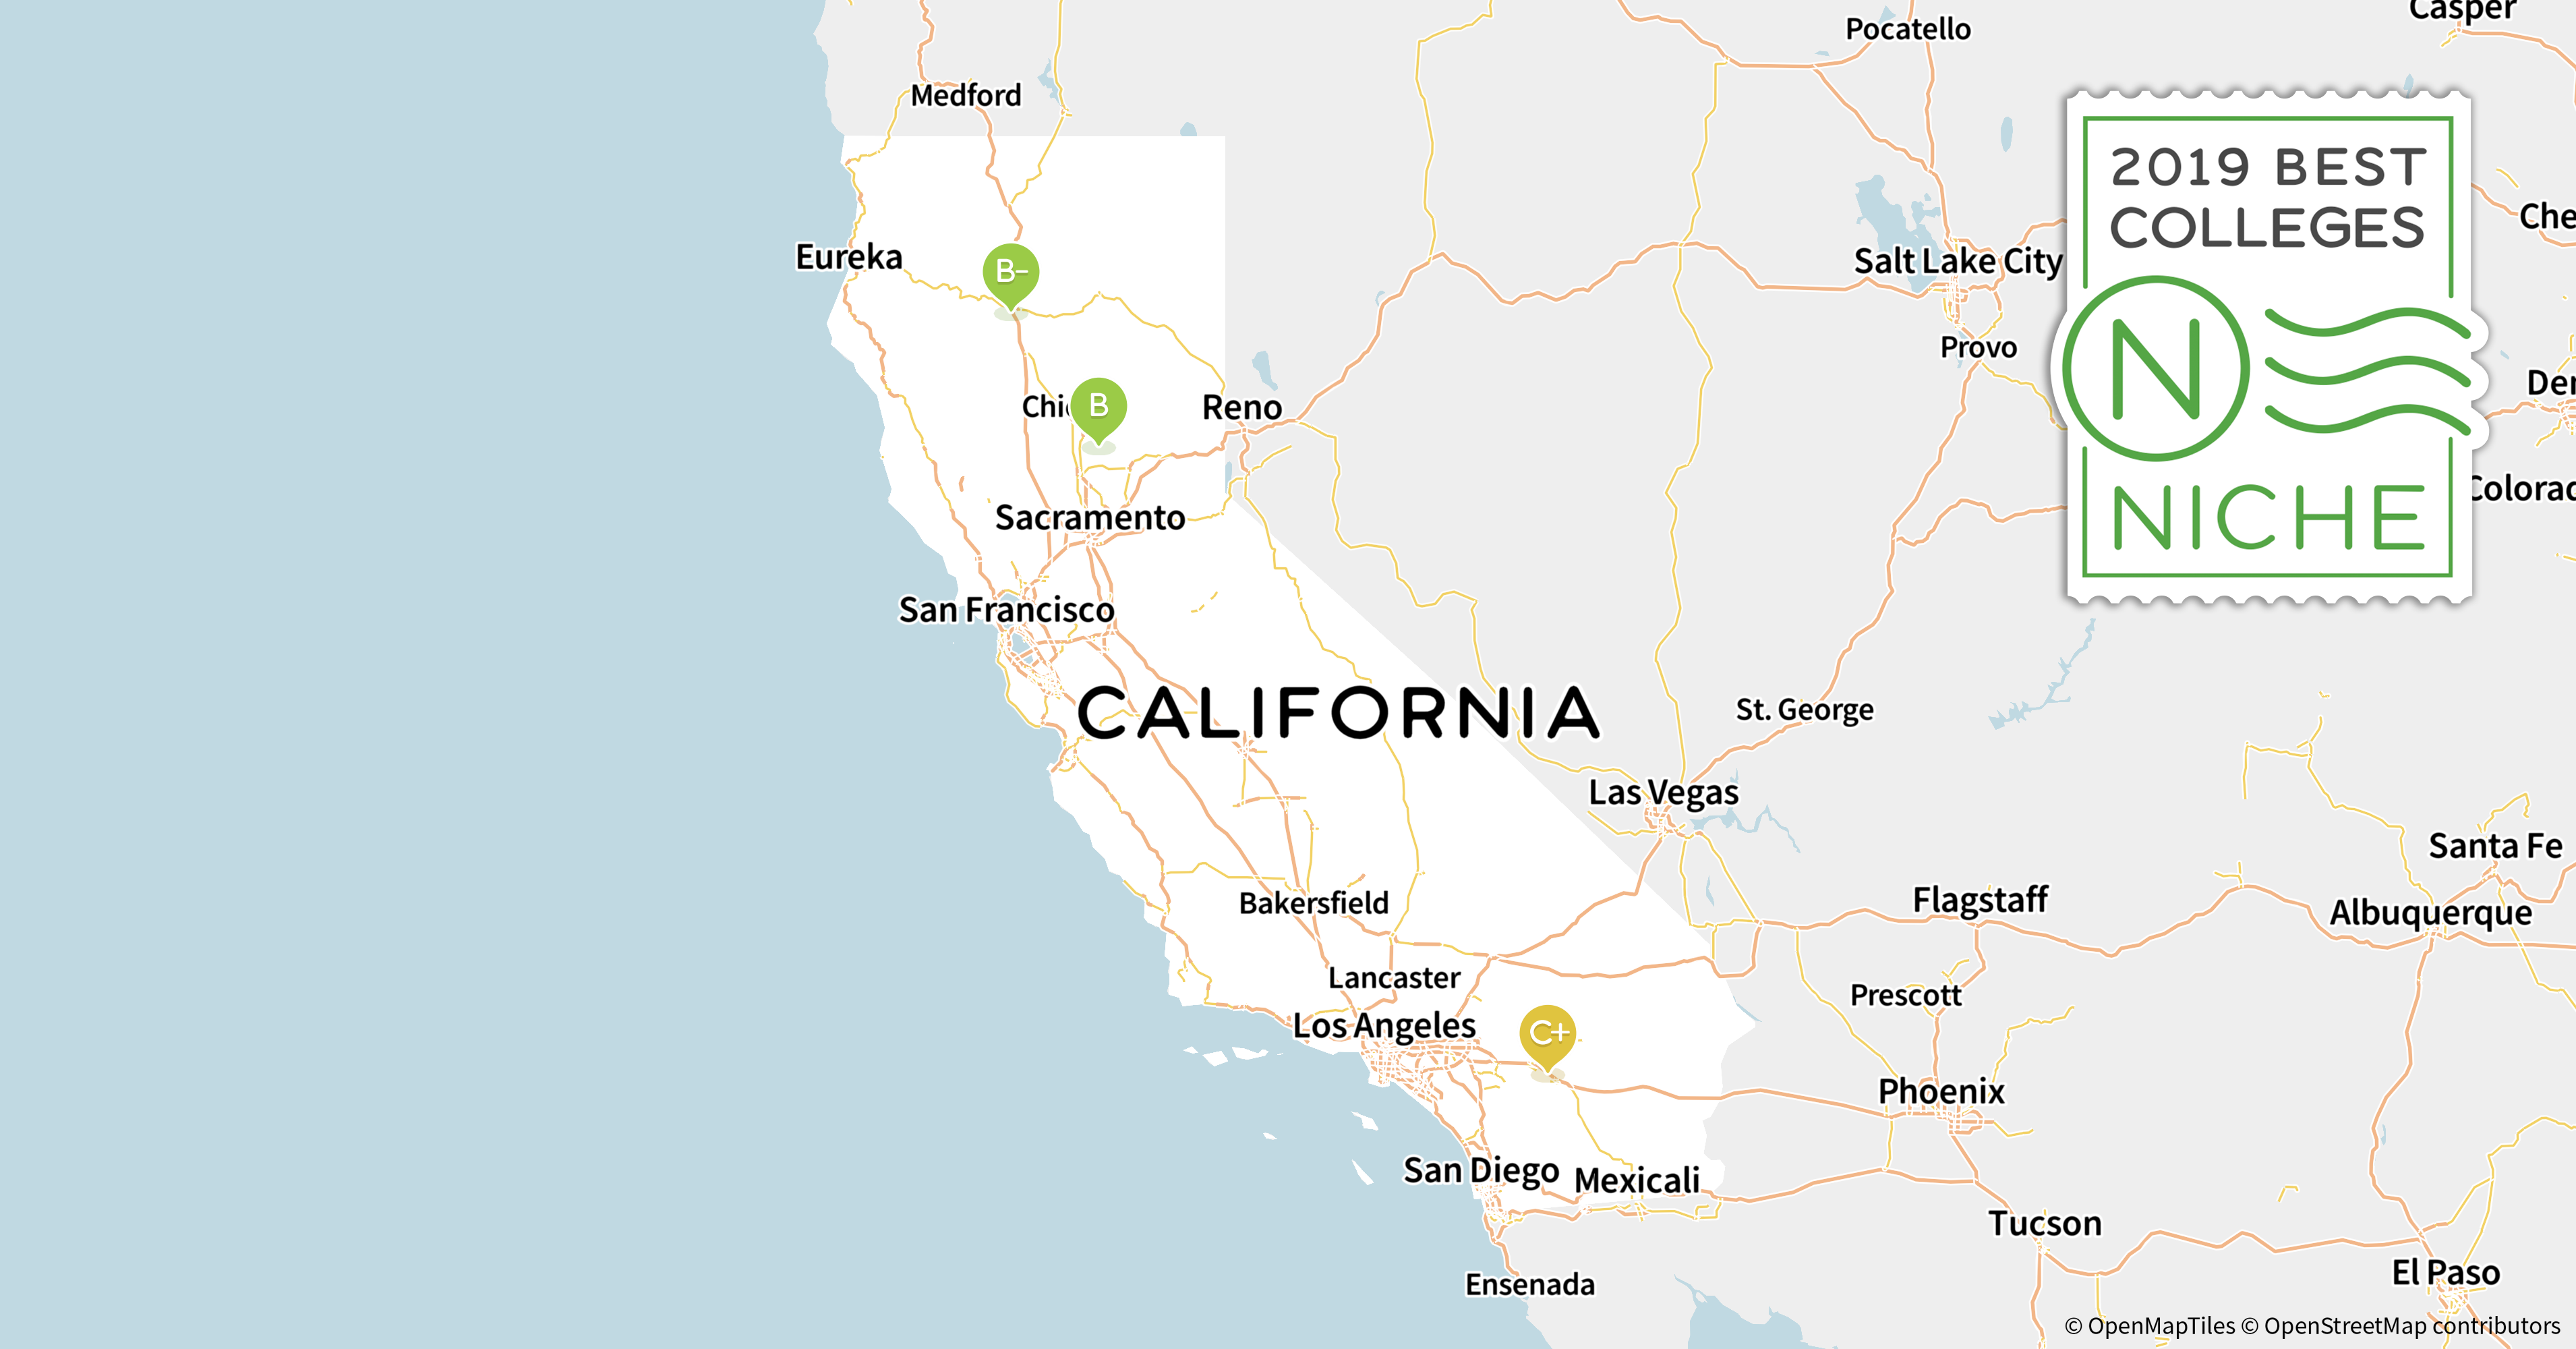 2019 Best Colleges in California - Niche